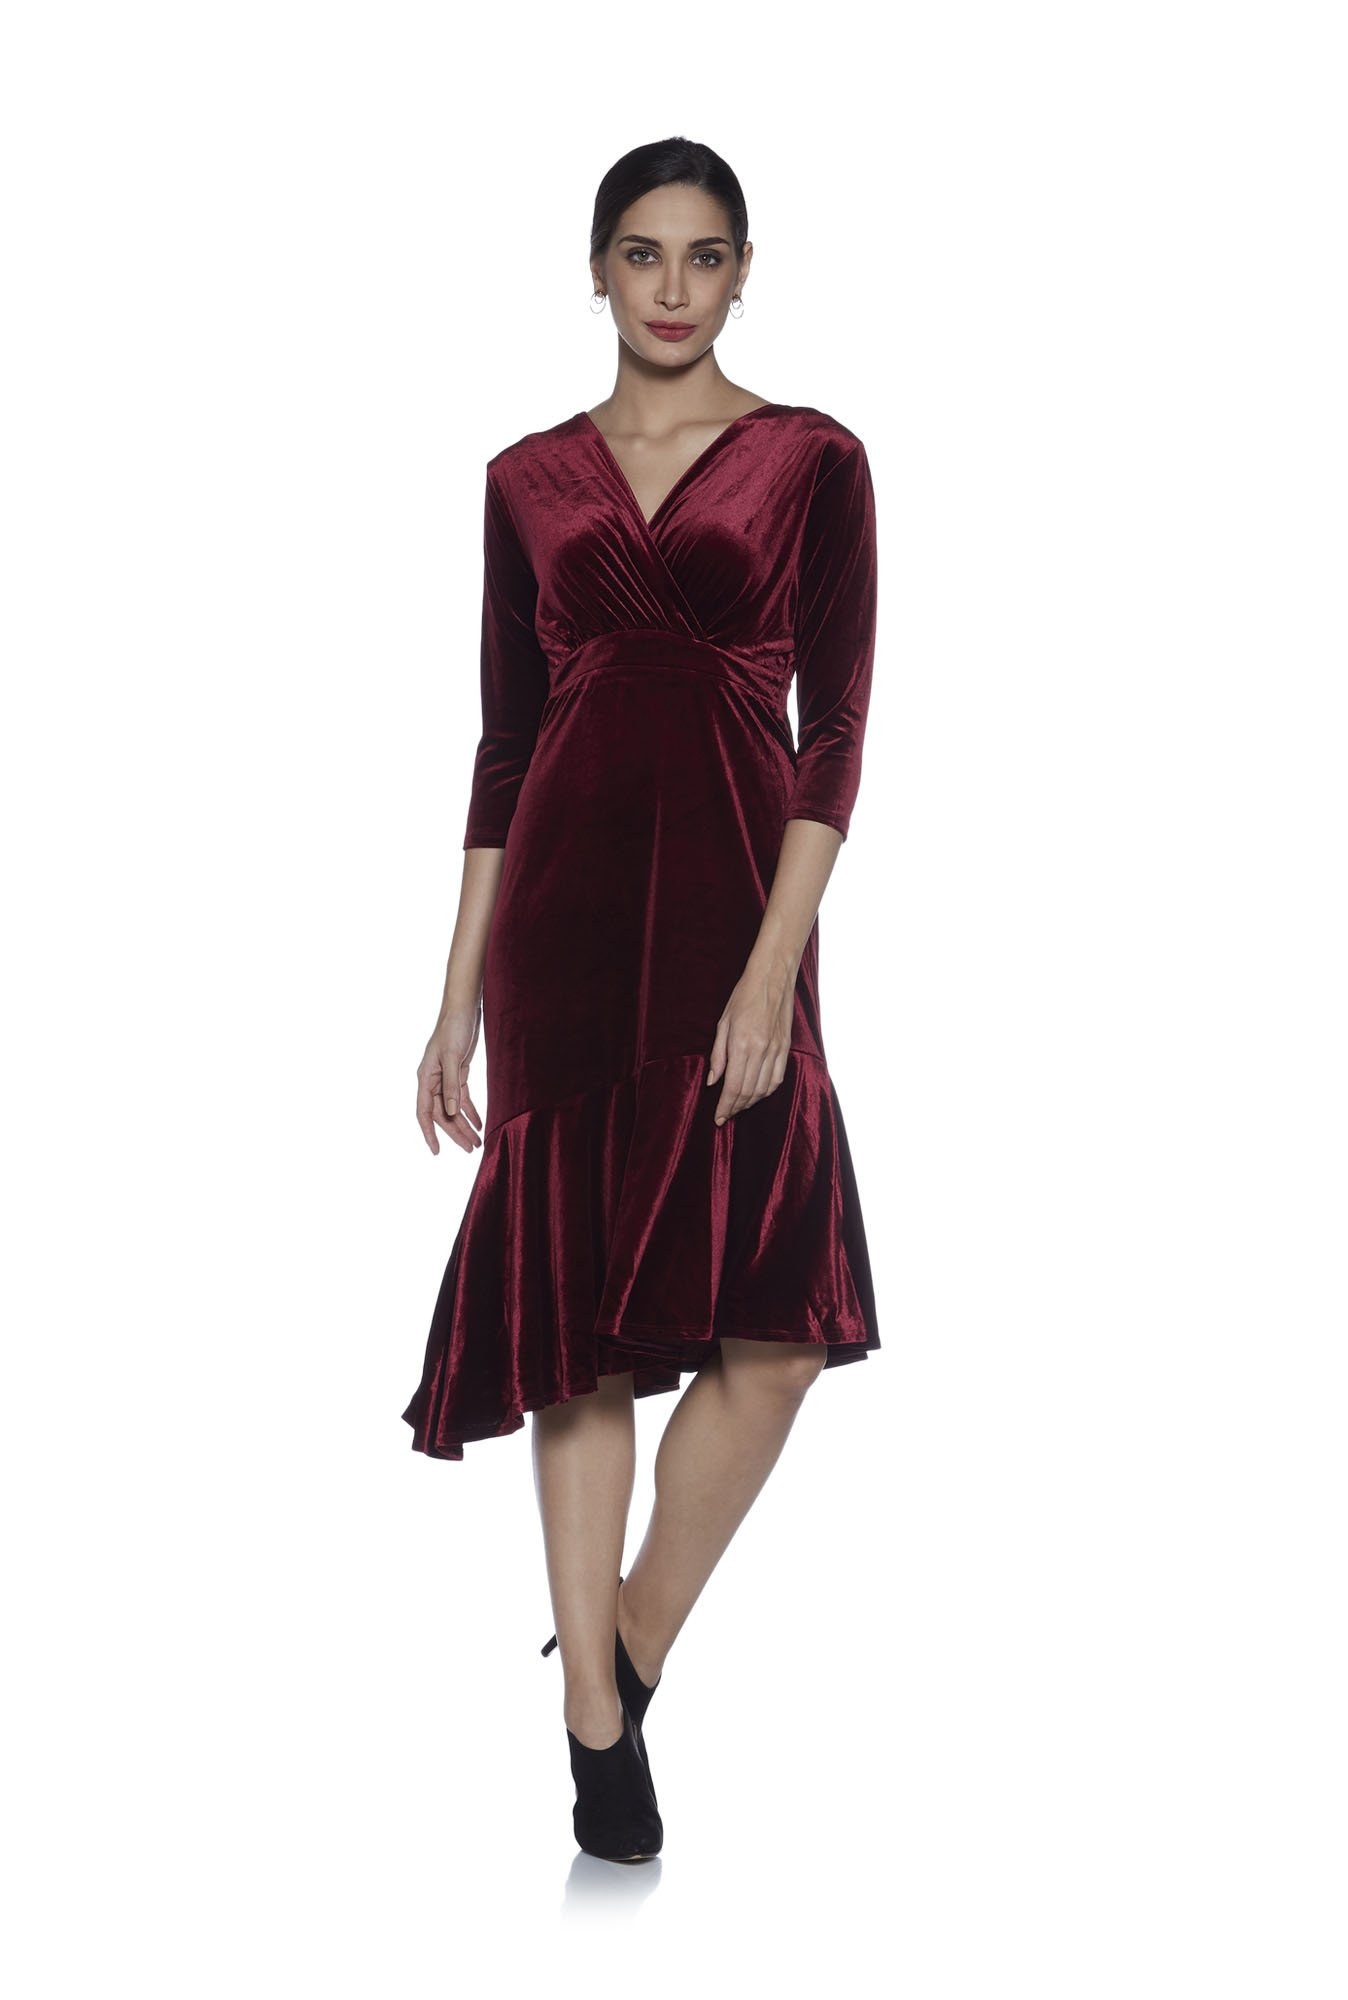 f18ba40b7b78 Buy Wardrobe by Westside Burgundy Velvet Cartin Dress for Women ...